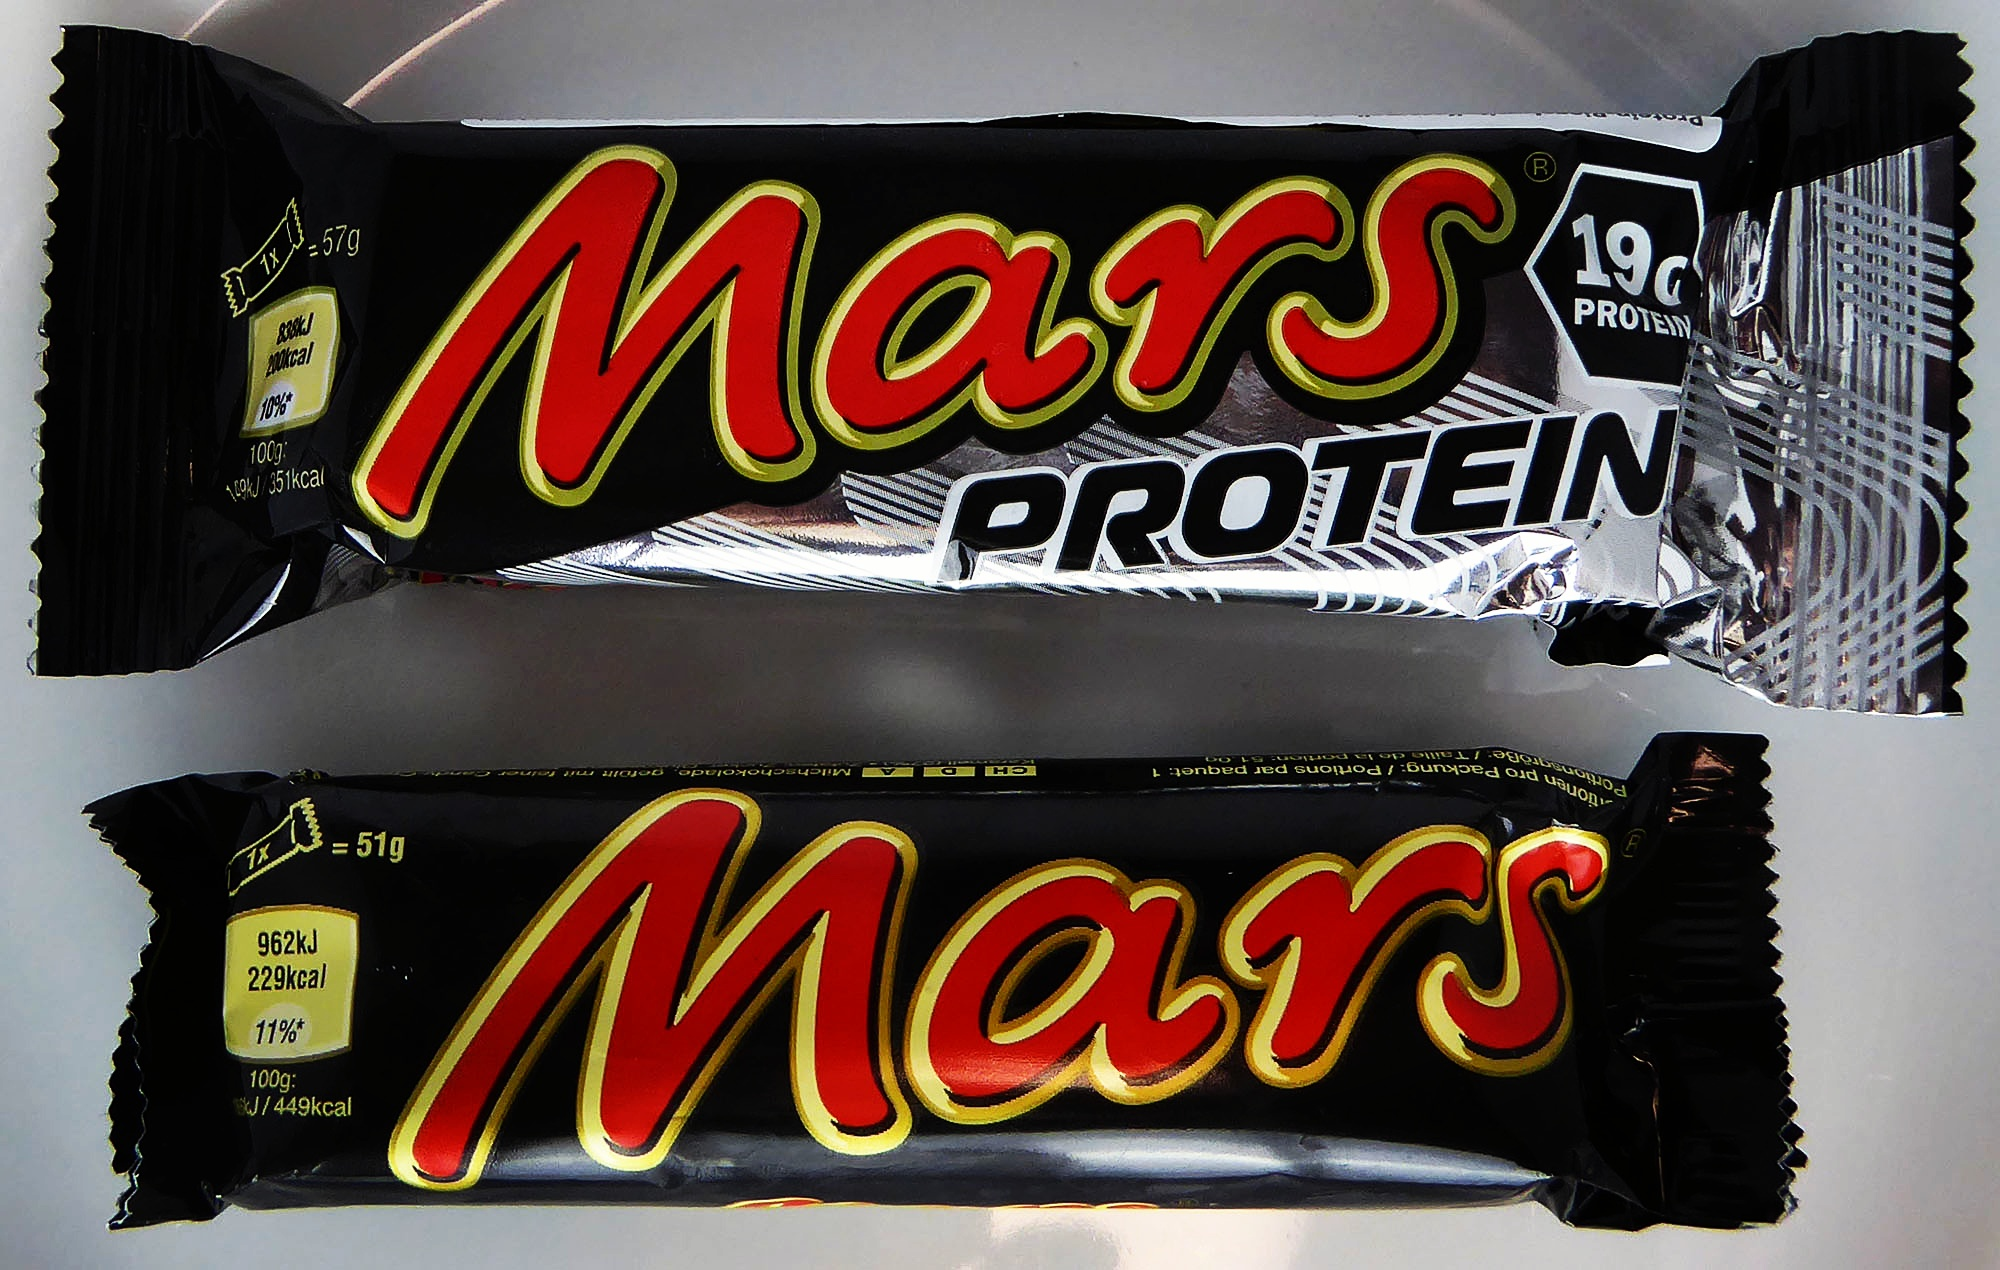 Mars Protein Proteinbar chocolate bar